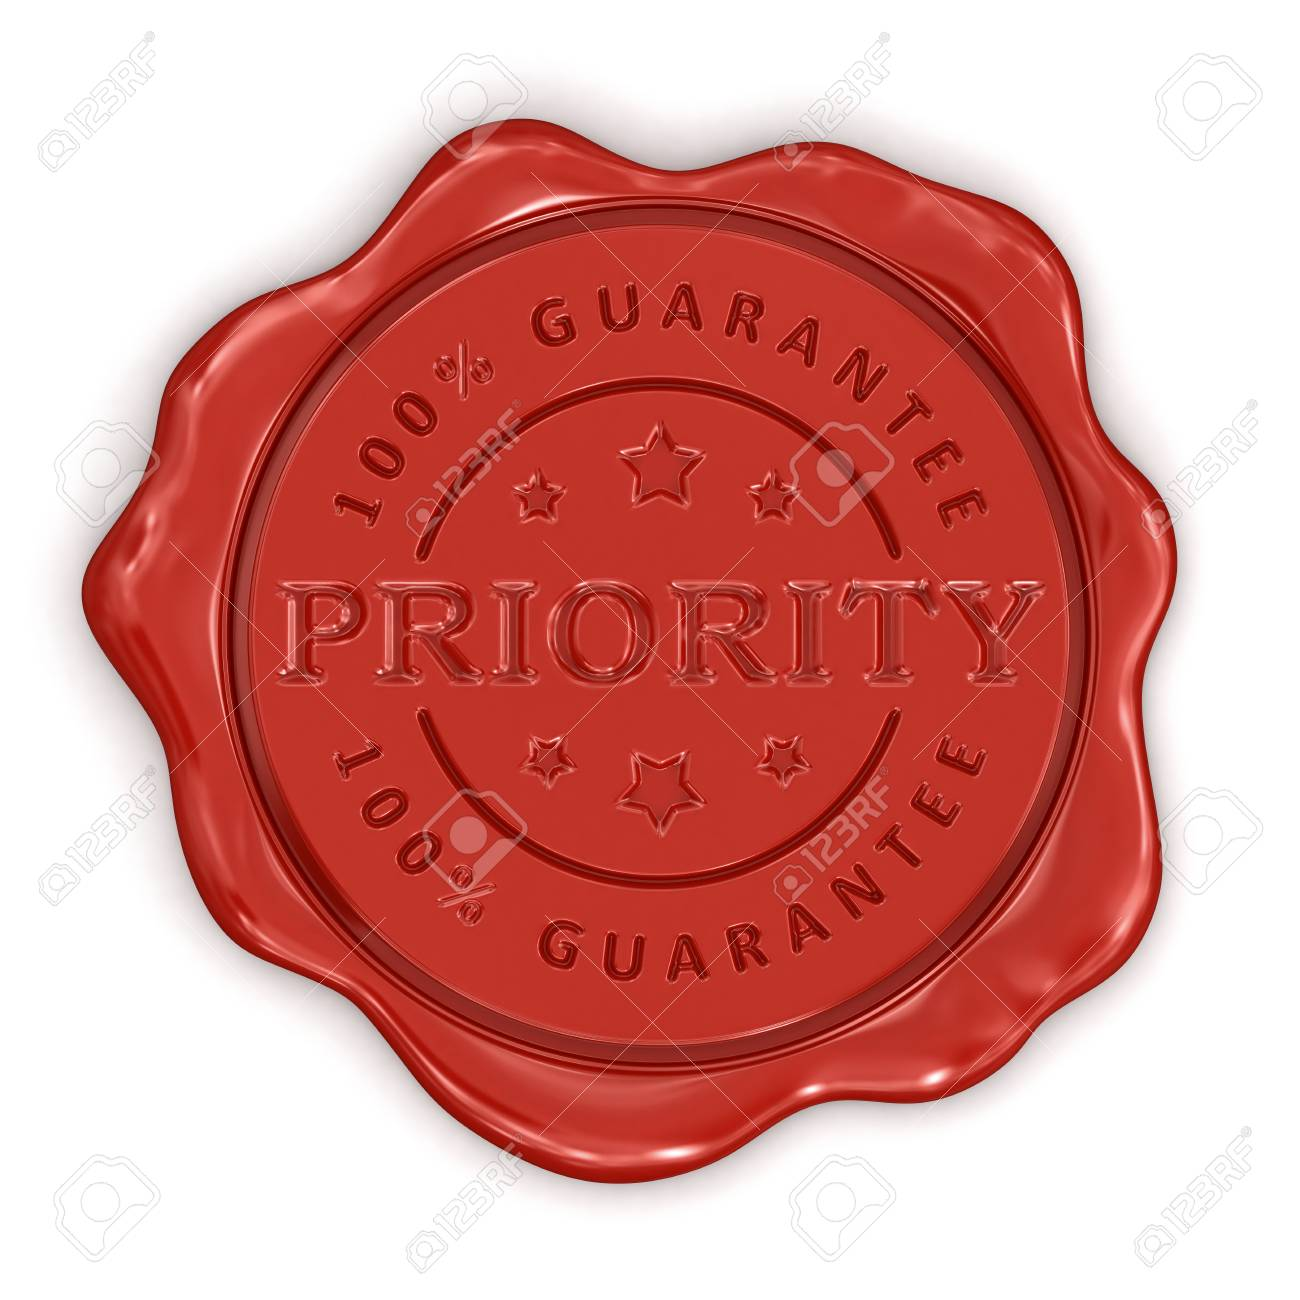 Wax Stamp Priority  clipping path included Stock Photo - 24654524